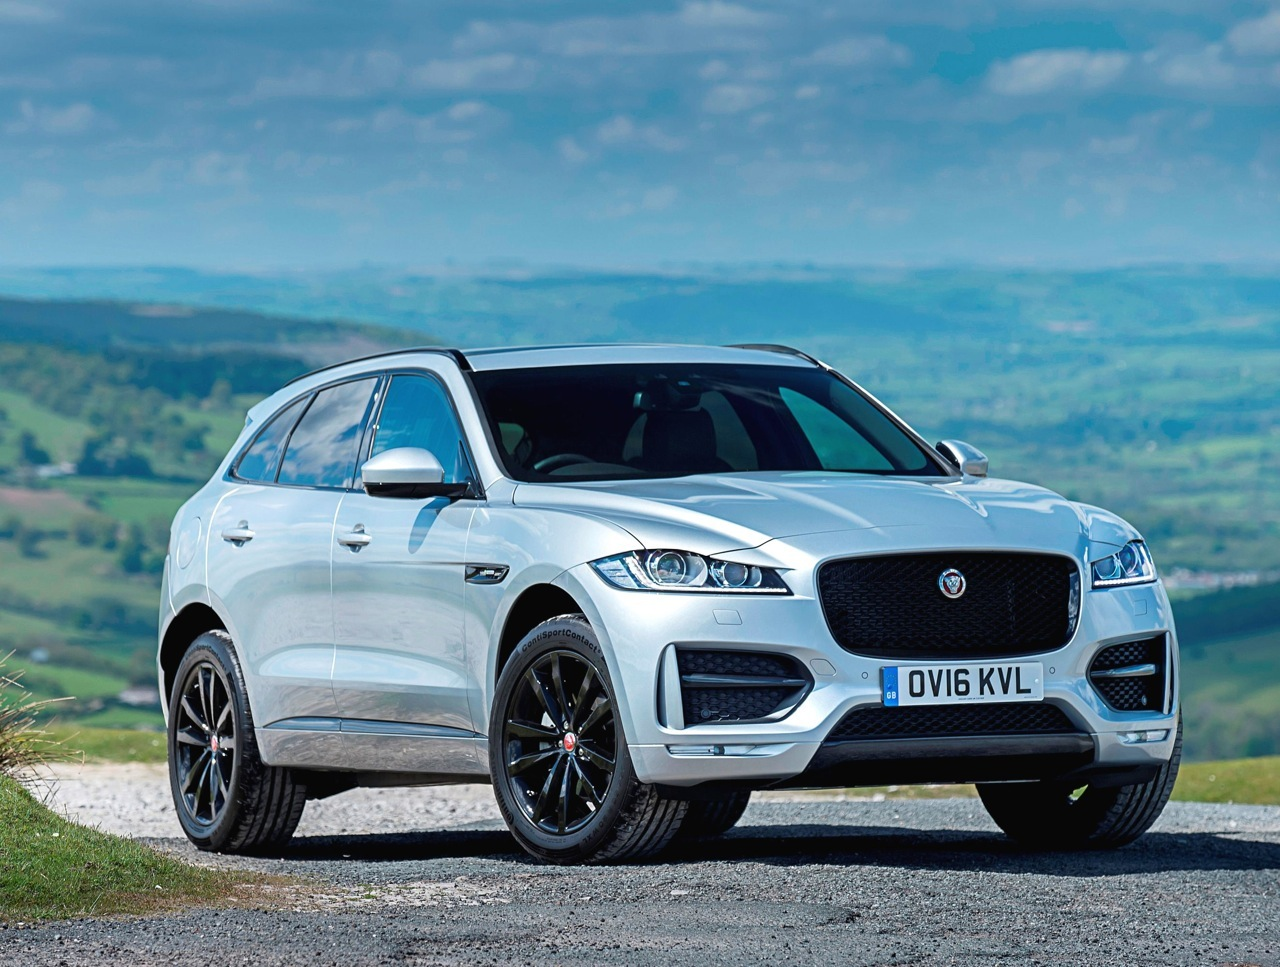 all new jaguar f pace suv first impressions wheels alive. Black Bedroom Furniture Sets. Home Design Ideas